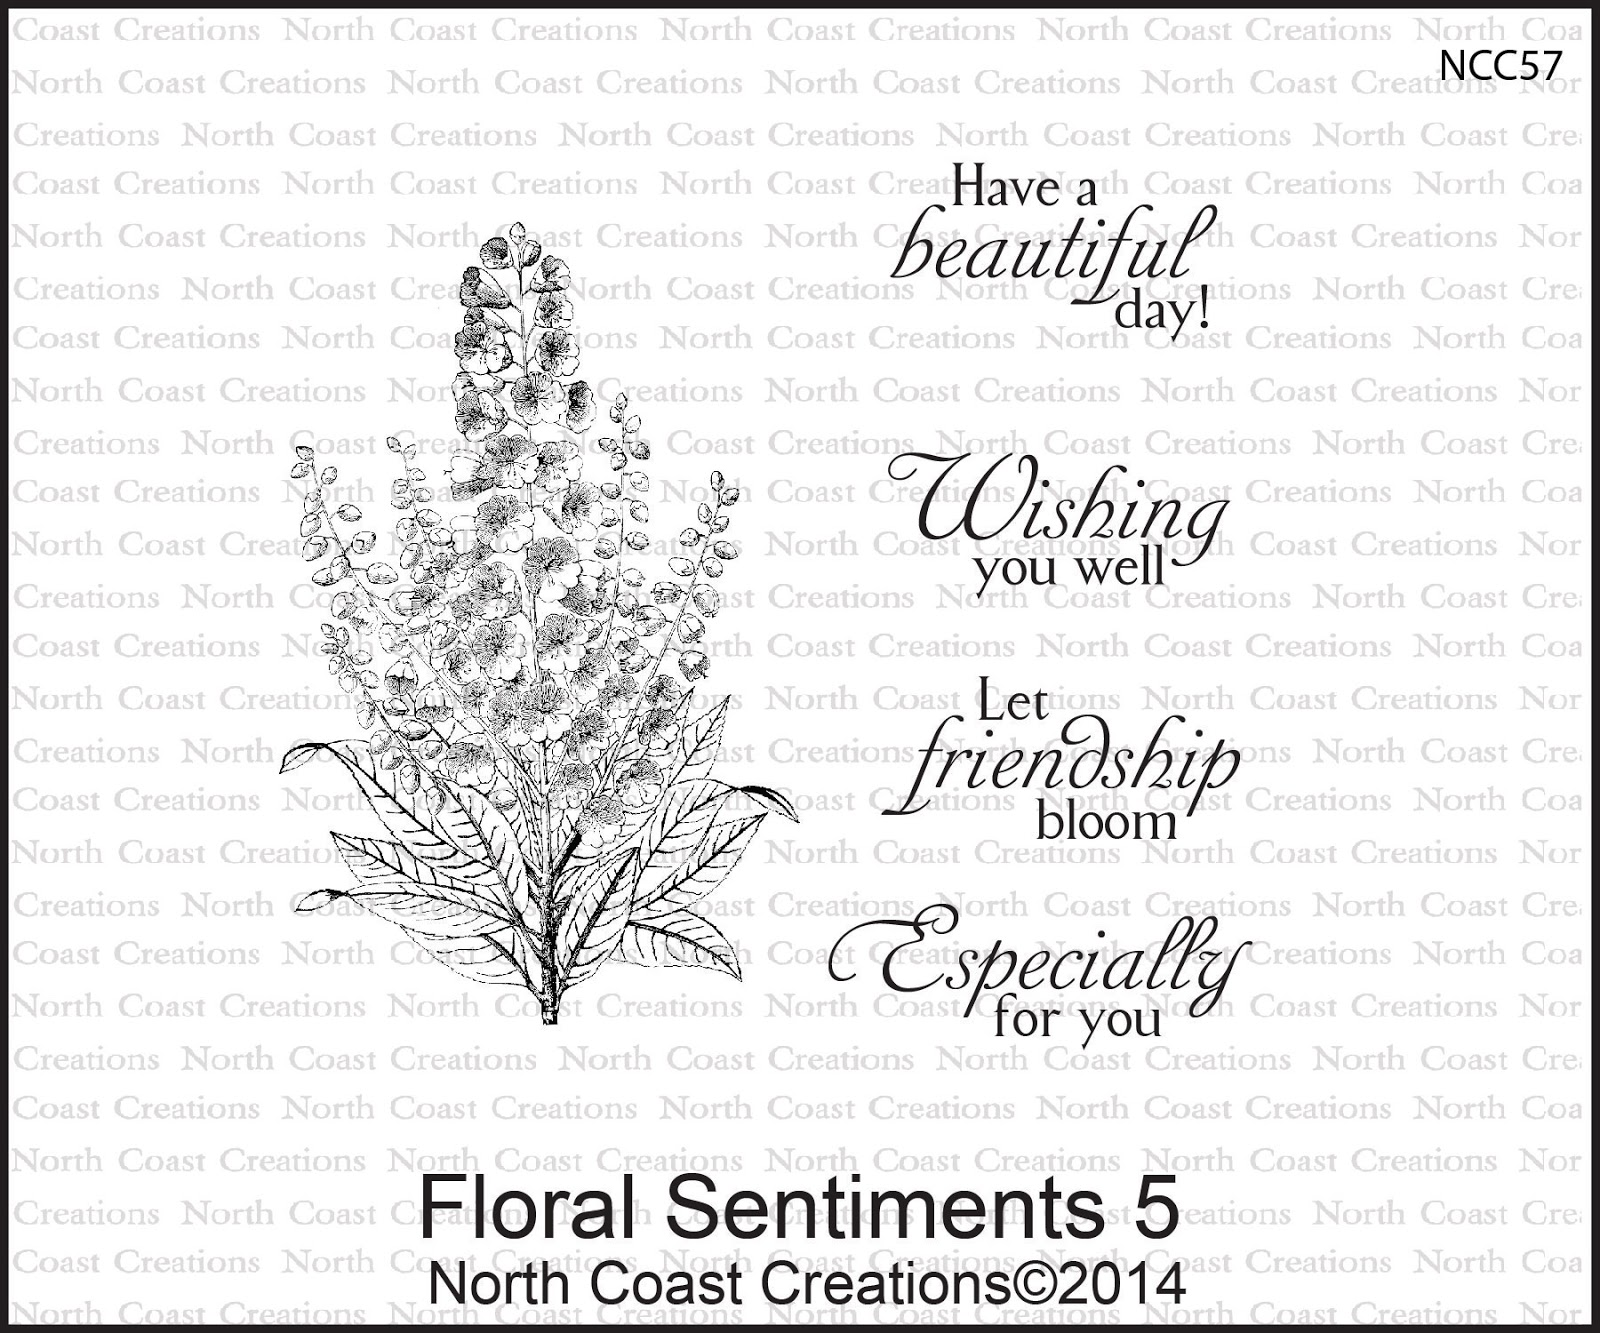 http://www.northcoastcreations.com/index.php/new-releases/ncc57-floral-sentiments-5.html